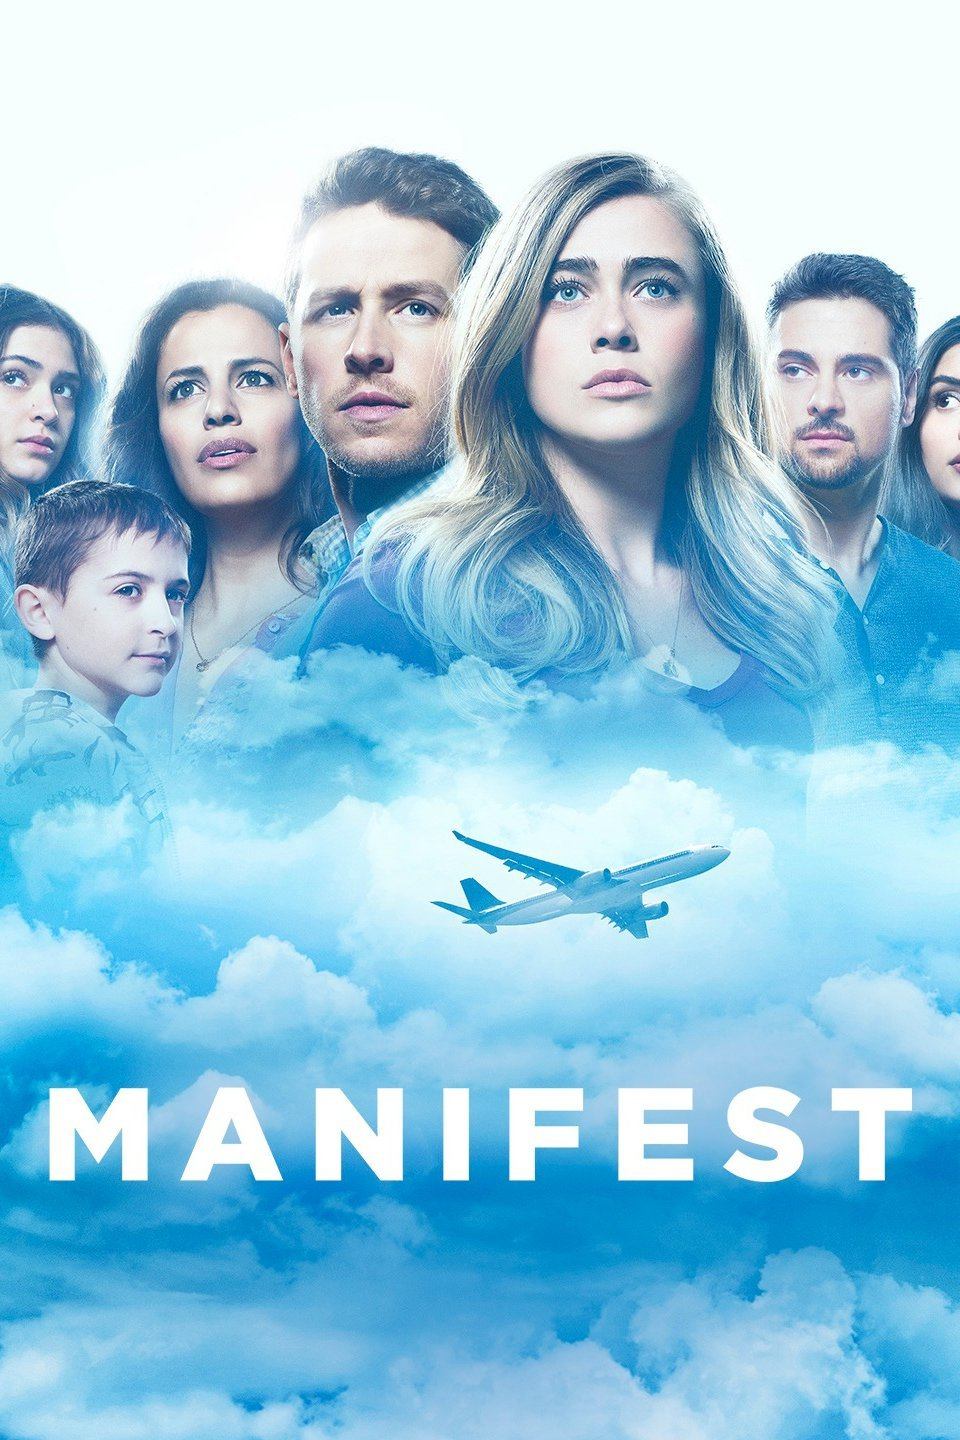 Manifest - When a Montego Air Flight 828 landed safely after turbulence, all flight attendants were extremely relieved but in the span of those few hours, the world had aged by five years. After mourning their loss, their friends, family and colleagues had given up hope. Now being given a second chance, a deeper mystery unfolds and all flight passengers realise they may be meant for something greater than they thought.